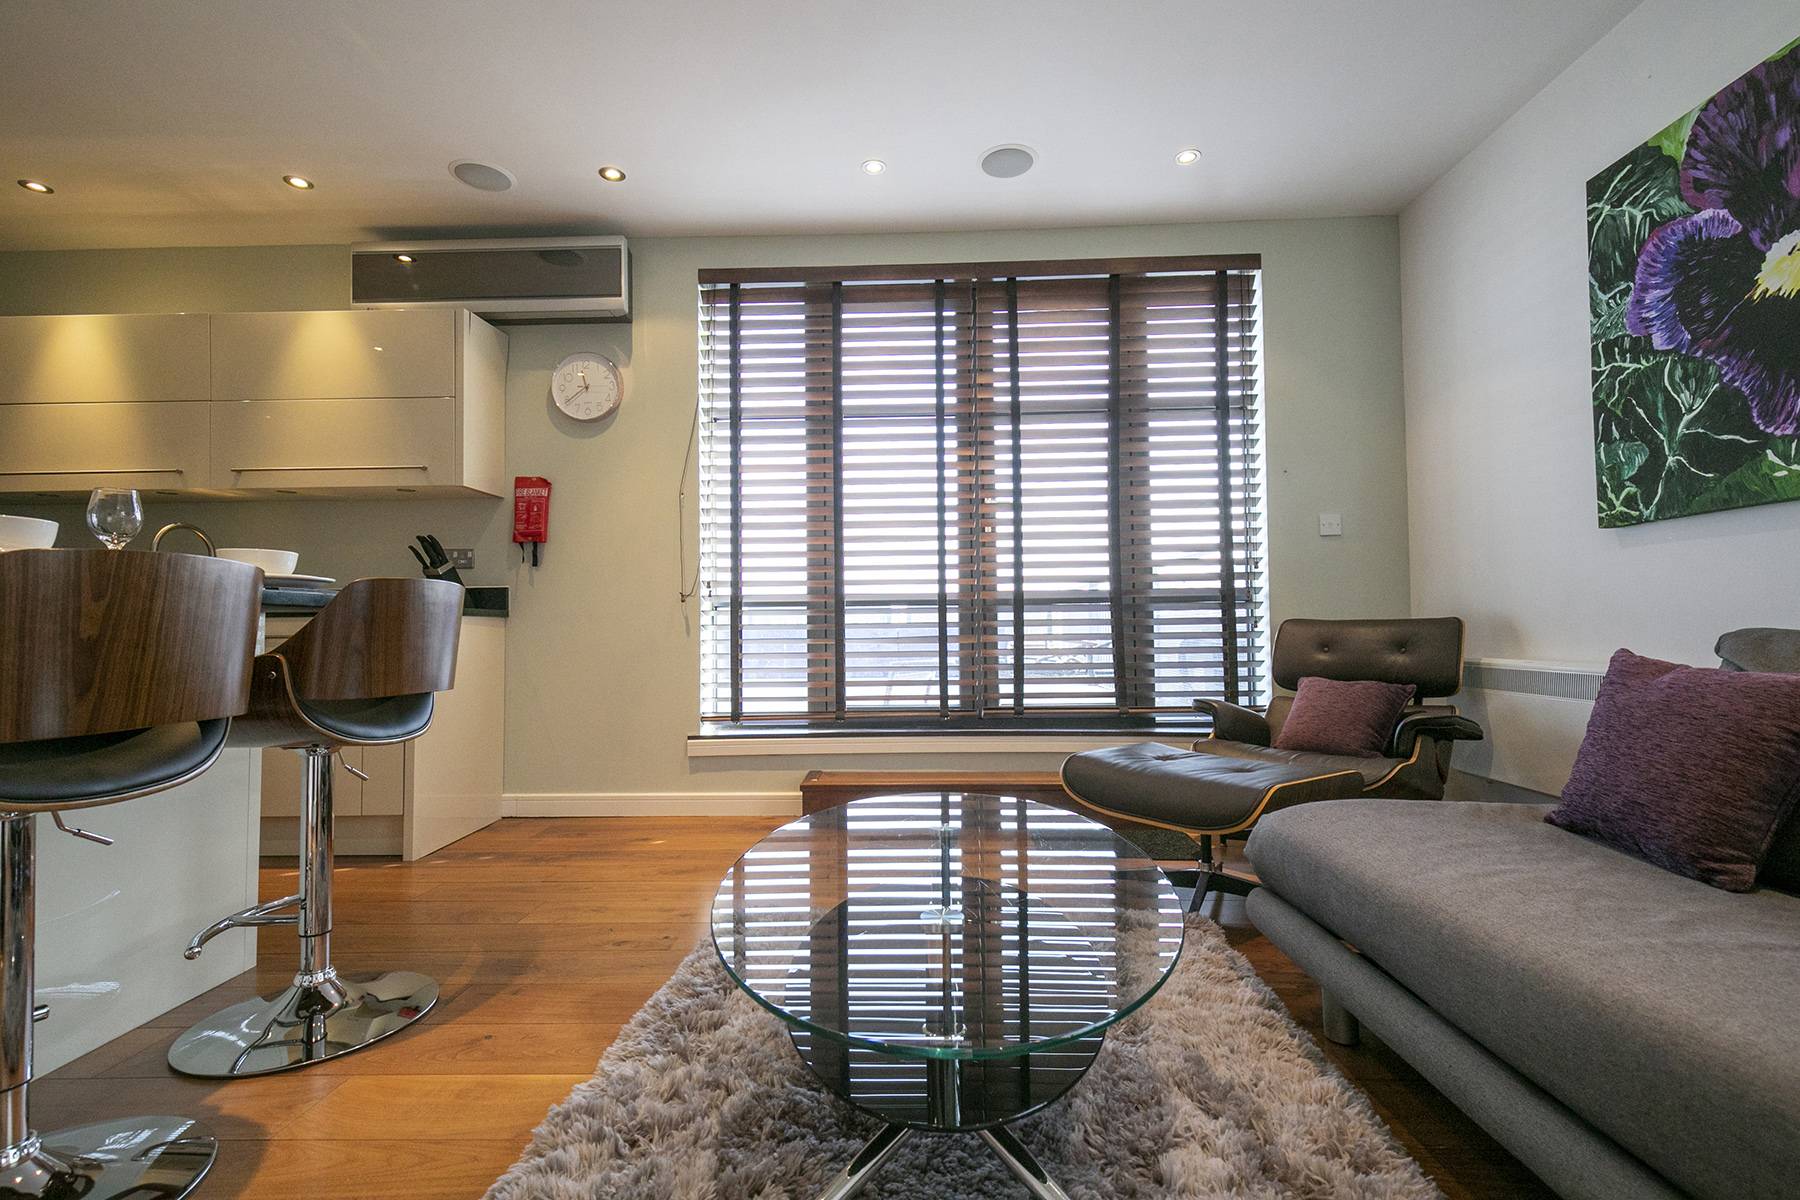 Living room at Wallis Square Apartments, Centre, Farnborough - Citybase Apartments